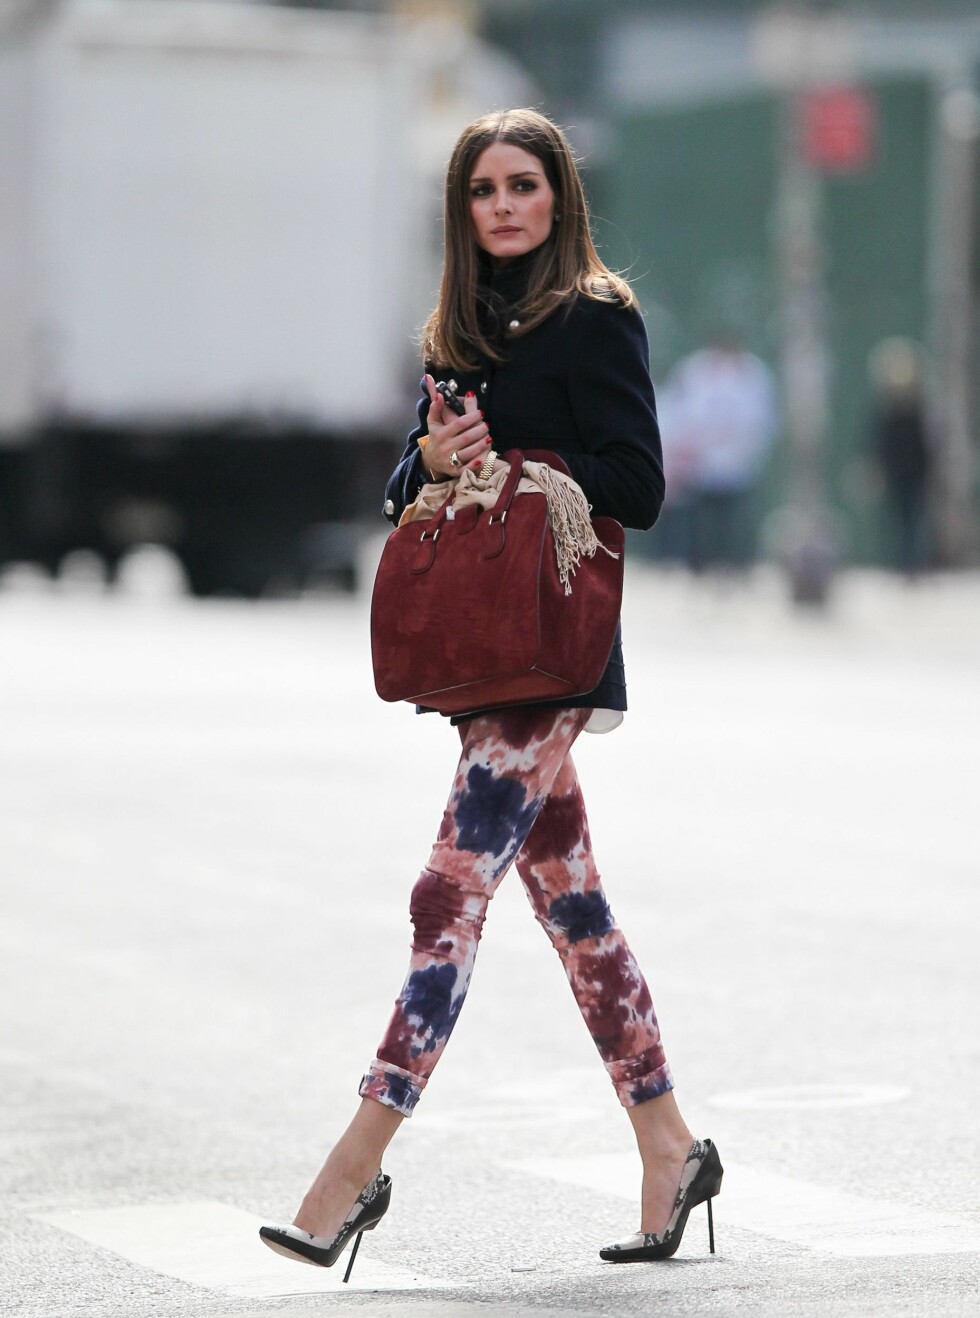 EXCLUSIVE: Olivia Palermo seen out and about in New York City, NY.  Pictured: Olivia Palermo Ref: SPL370490  120312   EXCLUSIVE Picture by: Splash News  Splash News and Pictures Los Angeles:310-821-2666 New York:212-619-2666 London:870-934-2666 photodesk@splashnews.com  *** Local Caption *** NO AUSTRALIA, CHINA, FRANCE, HONG KONG, INDONESIA, NEW ZEALAND, PHILIPPINES, TAIWAN Foto: All Over Press